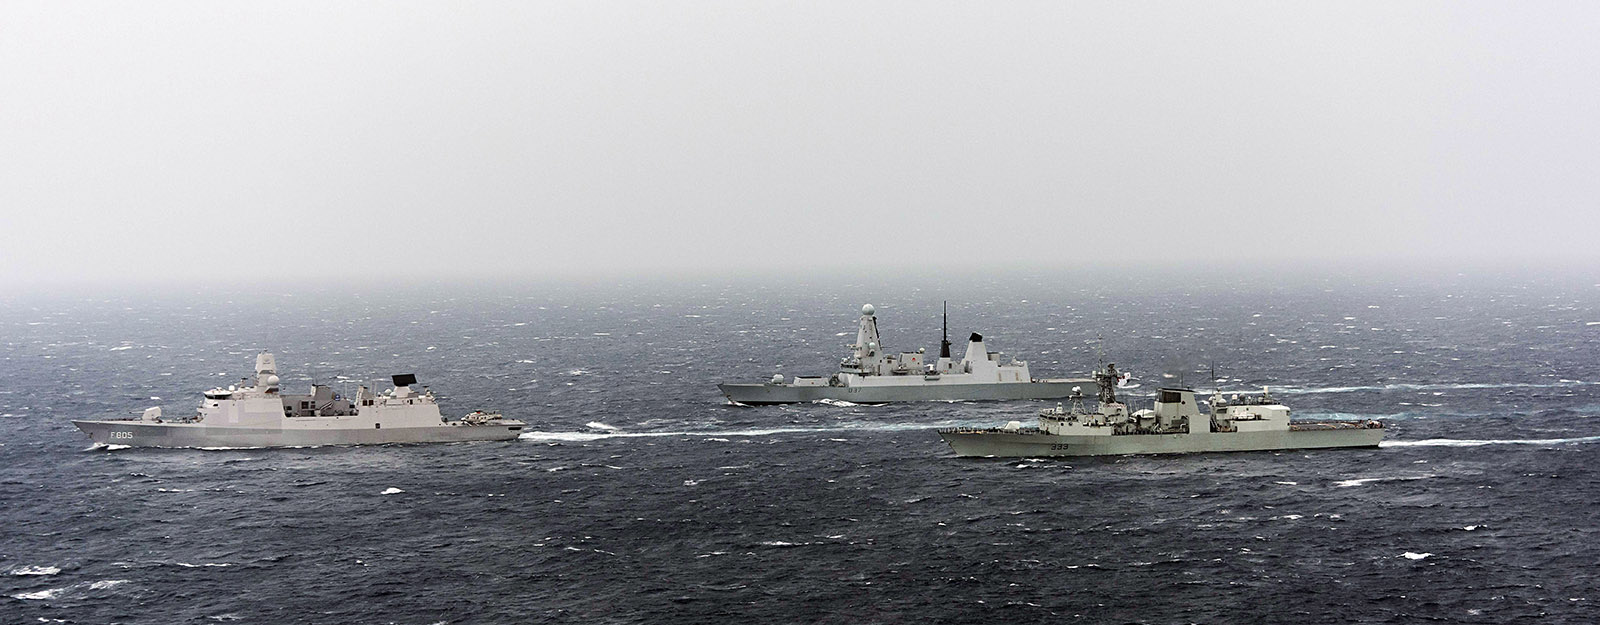 HNLS Evertson, HMCS Toronto and HMS Duncan